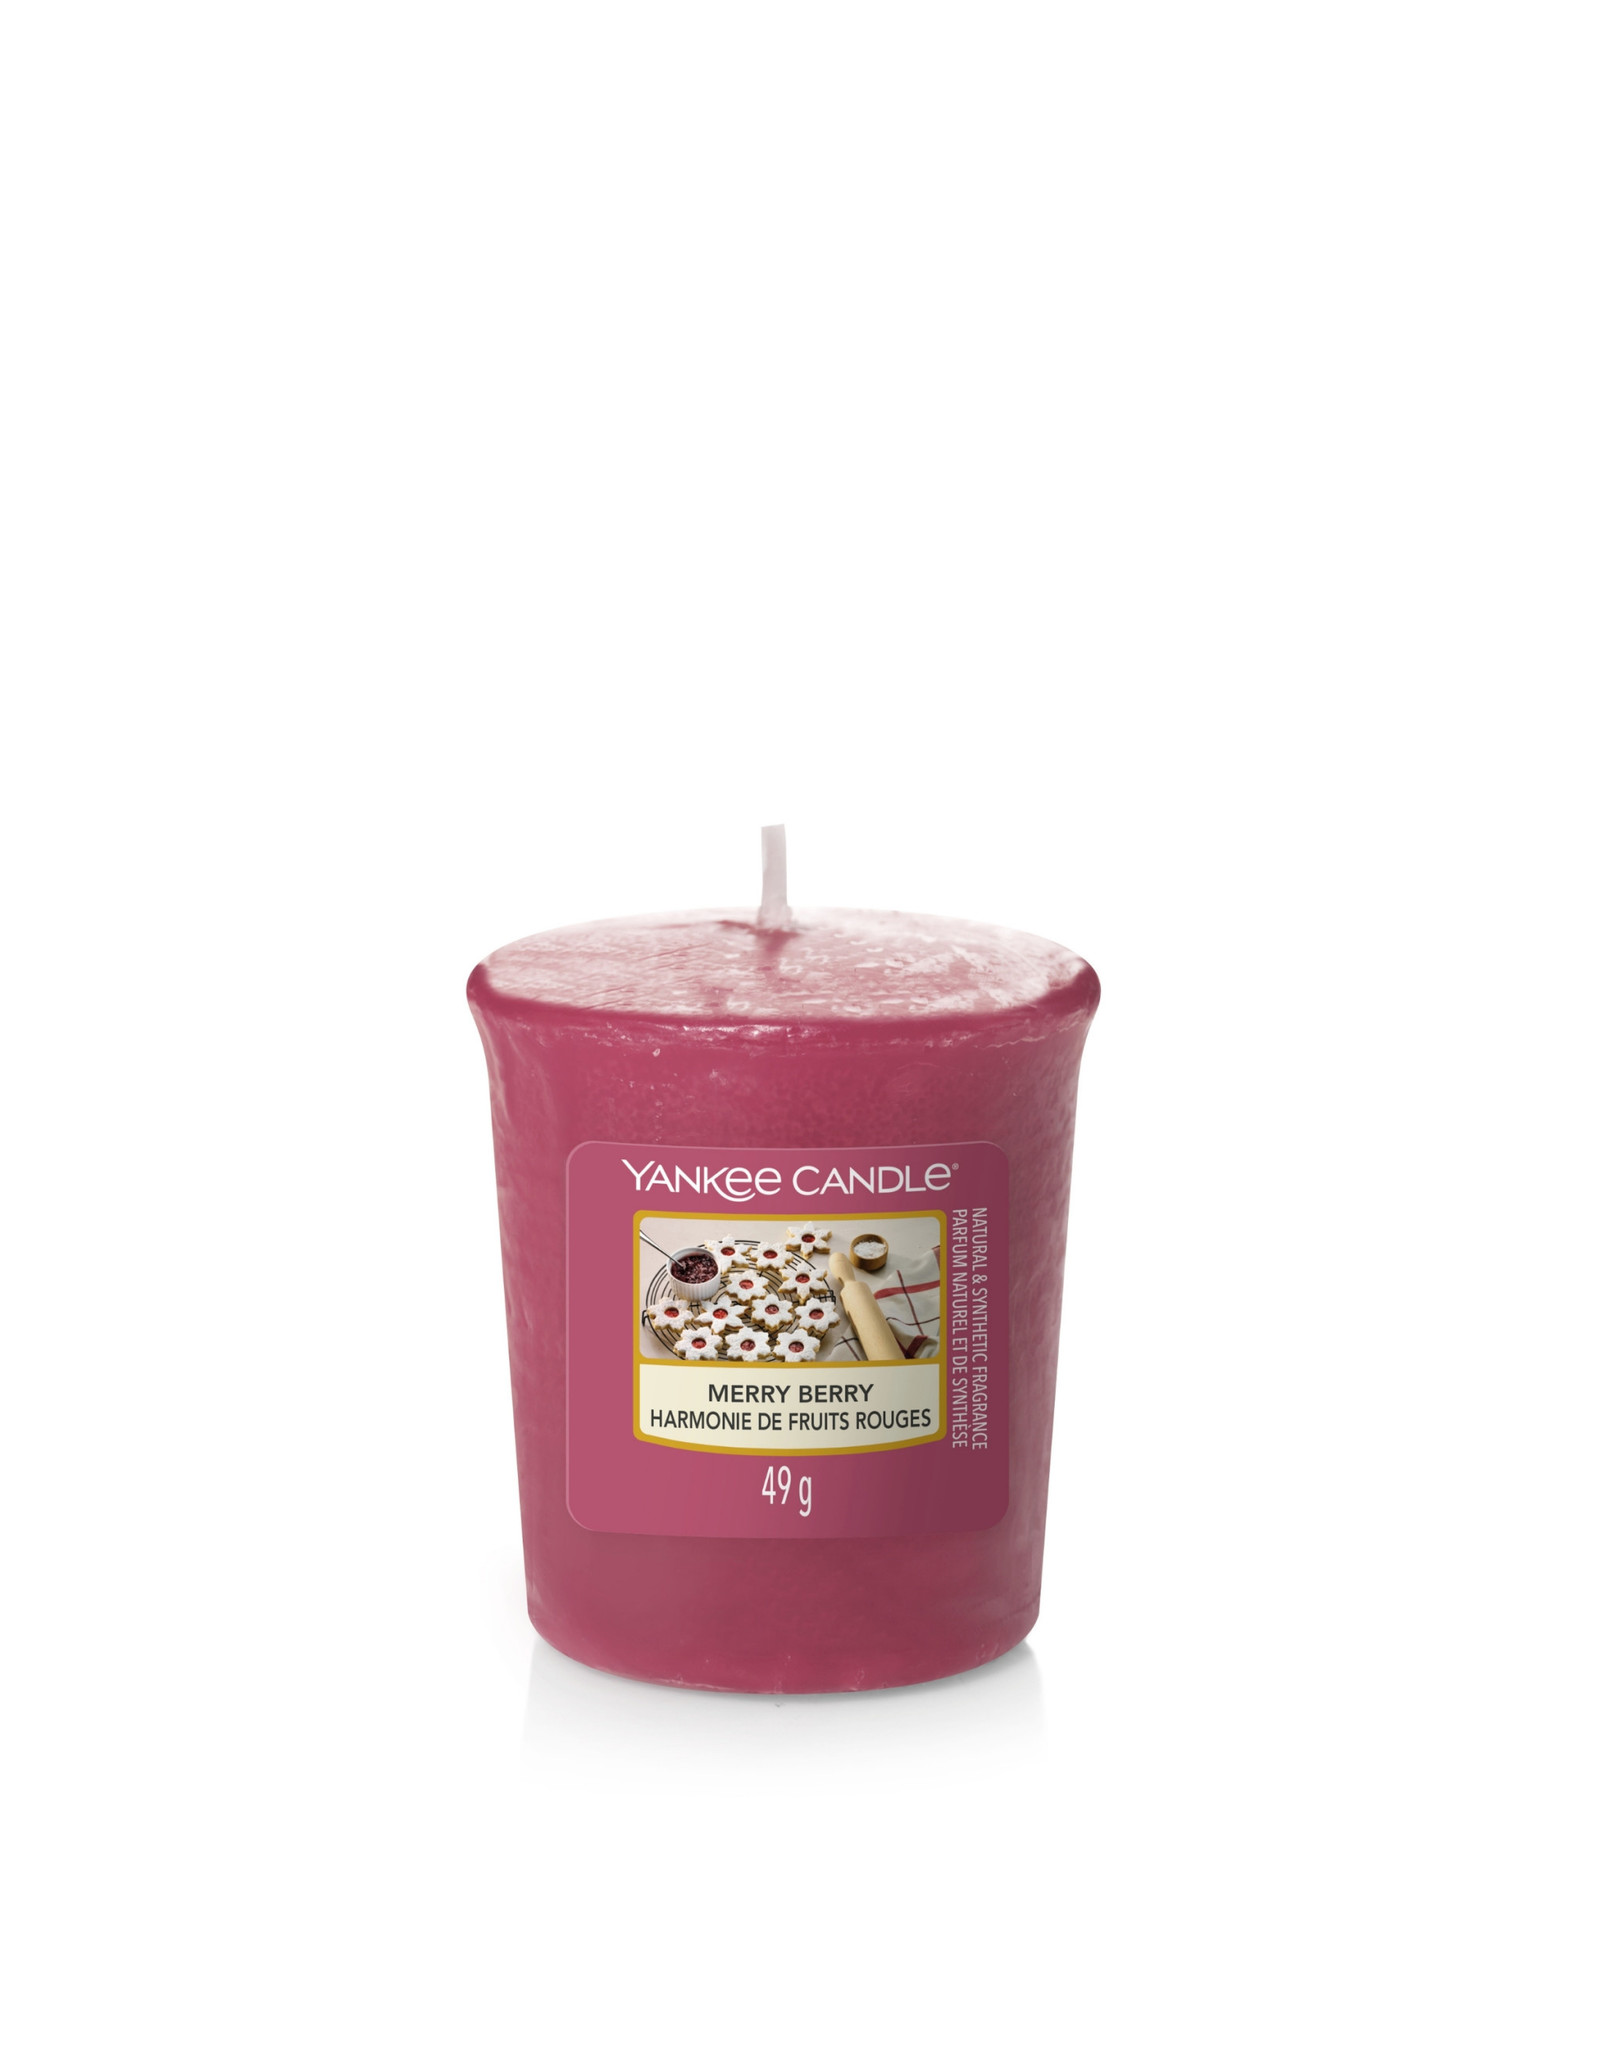 Yankee Candle Merry Berry - Votive